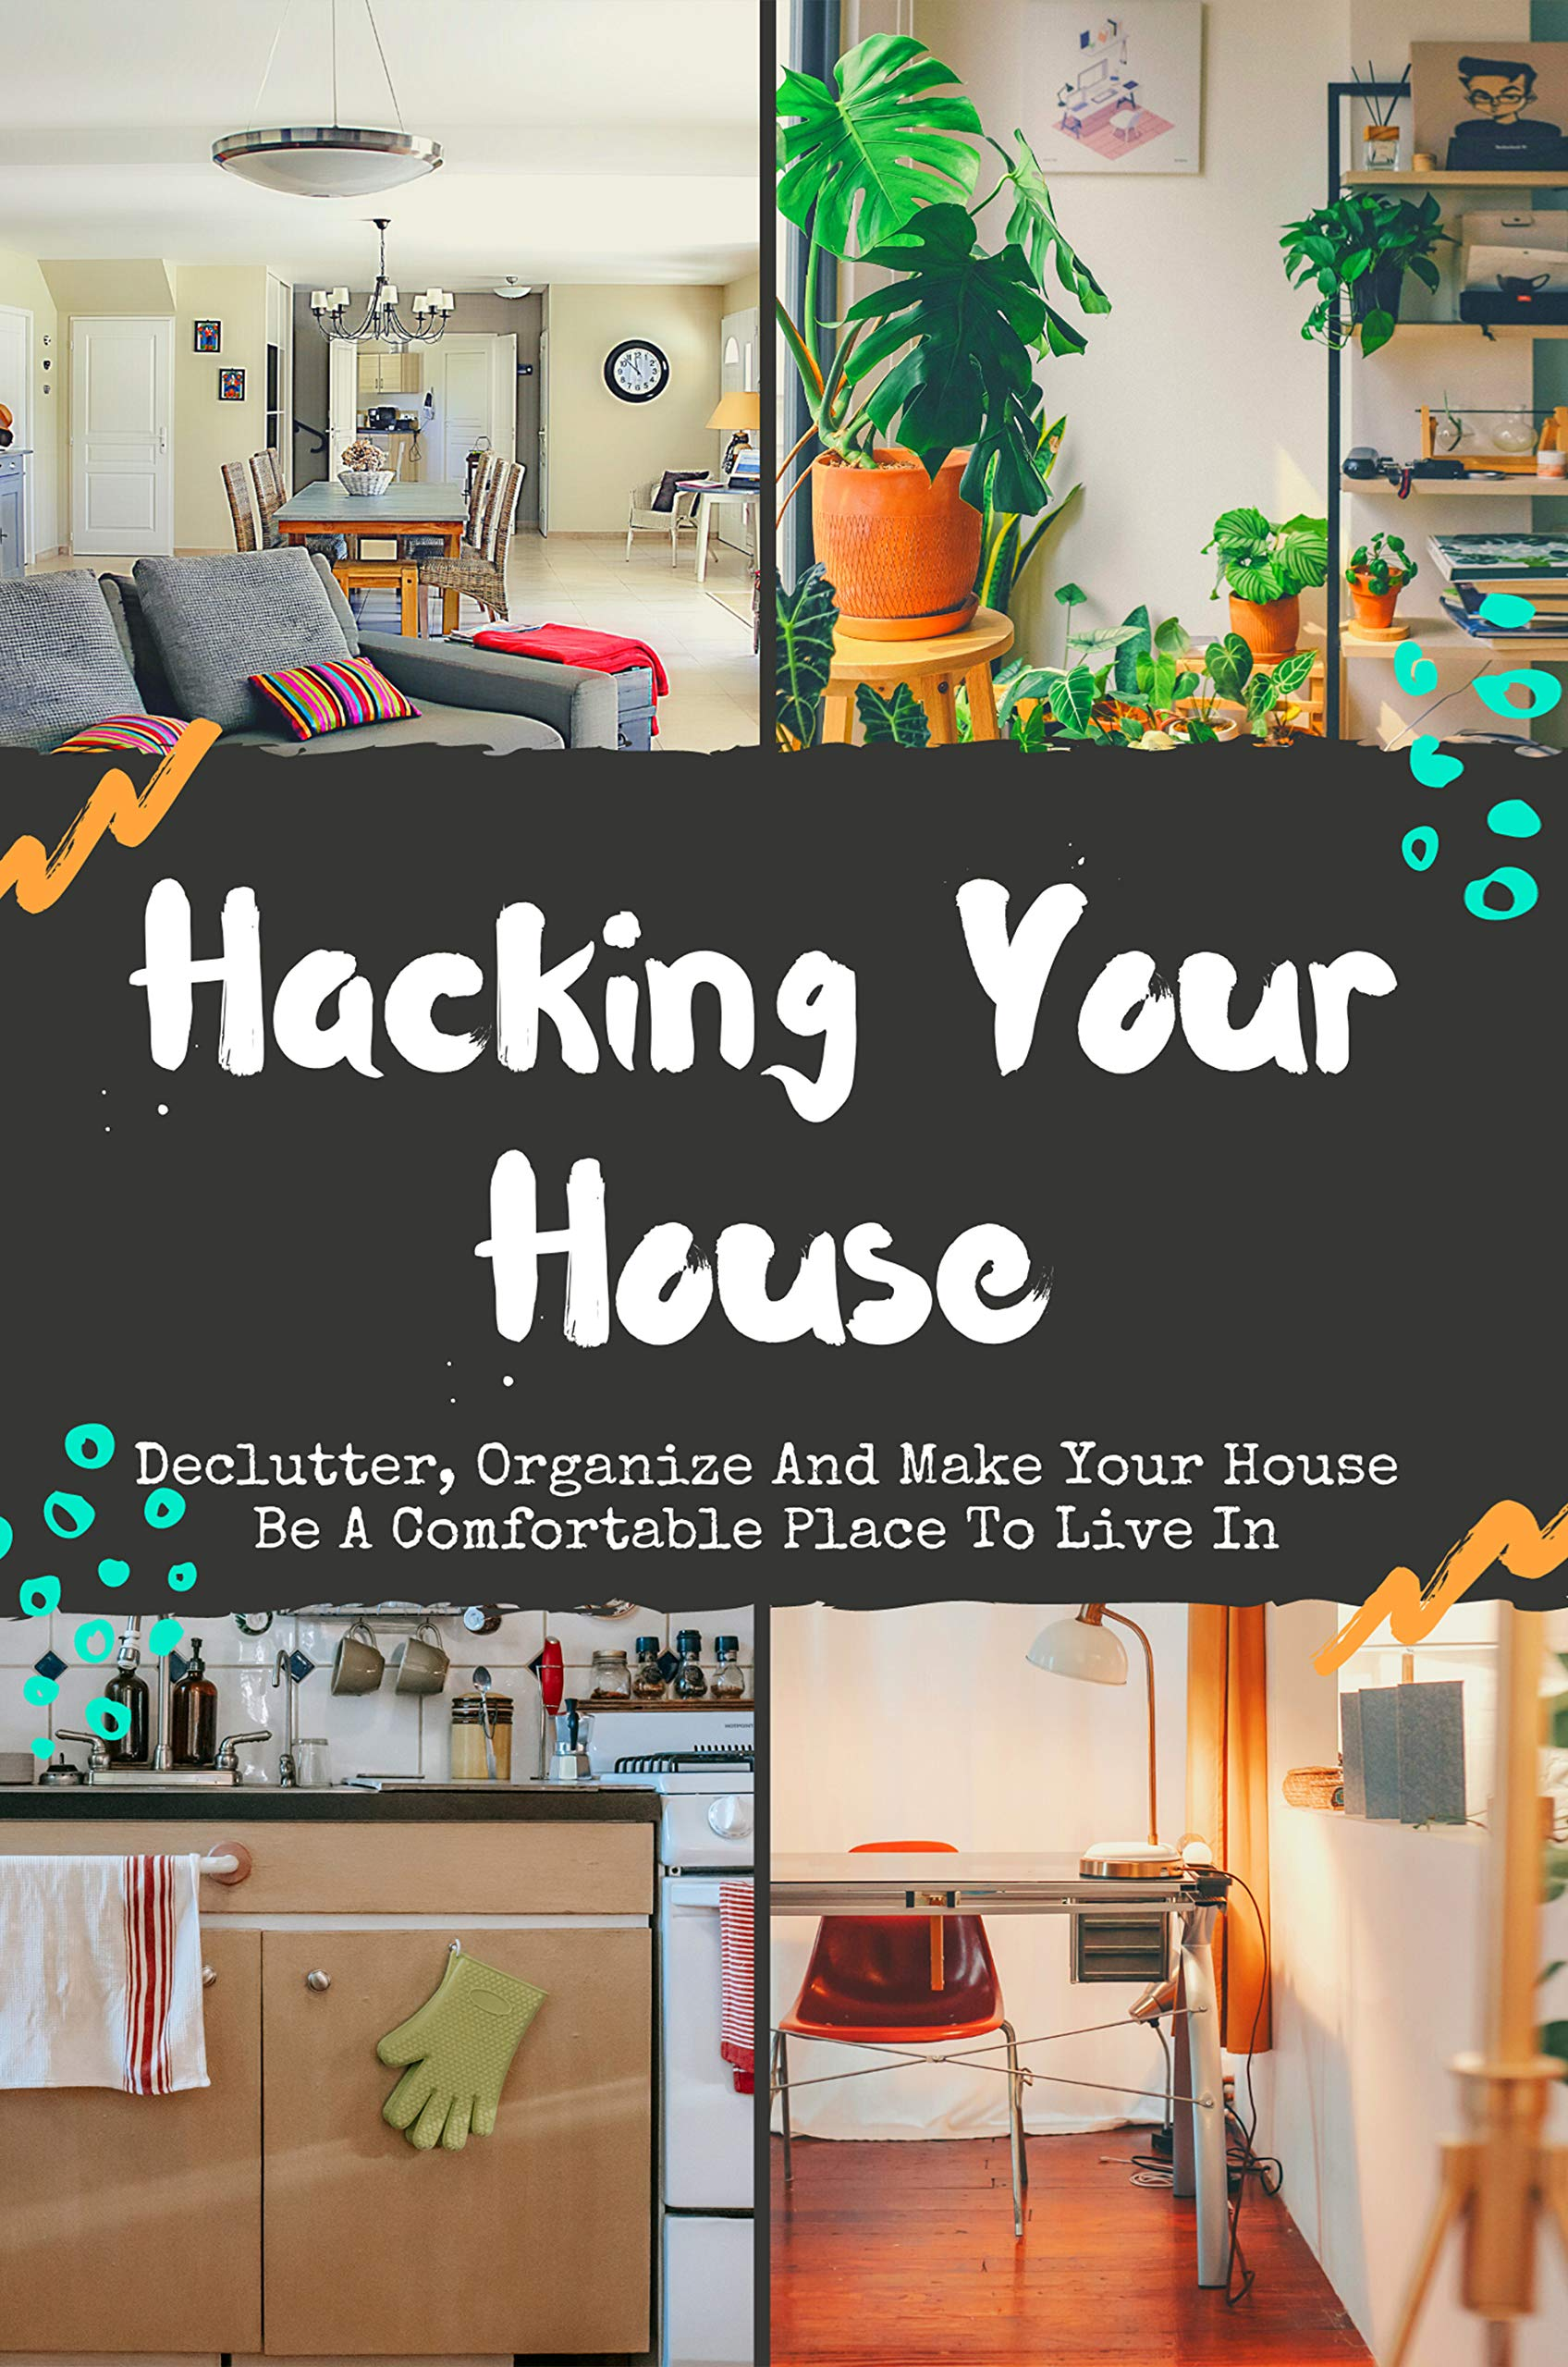 Hacking Your House: Declutter, Organize And Make Your House Be A Comfortable Place To Live In: Home Improvement Diy